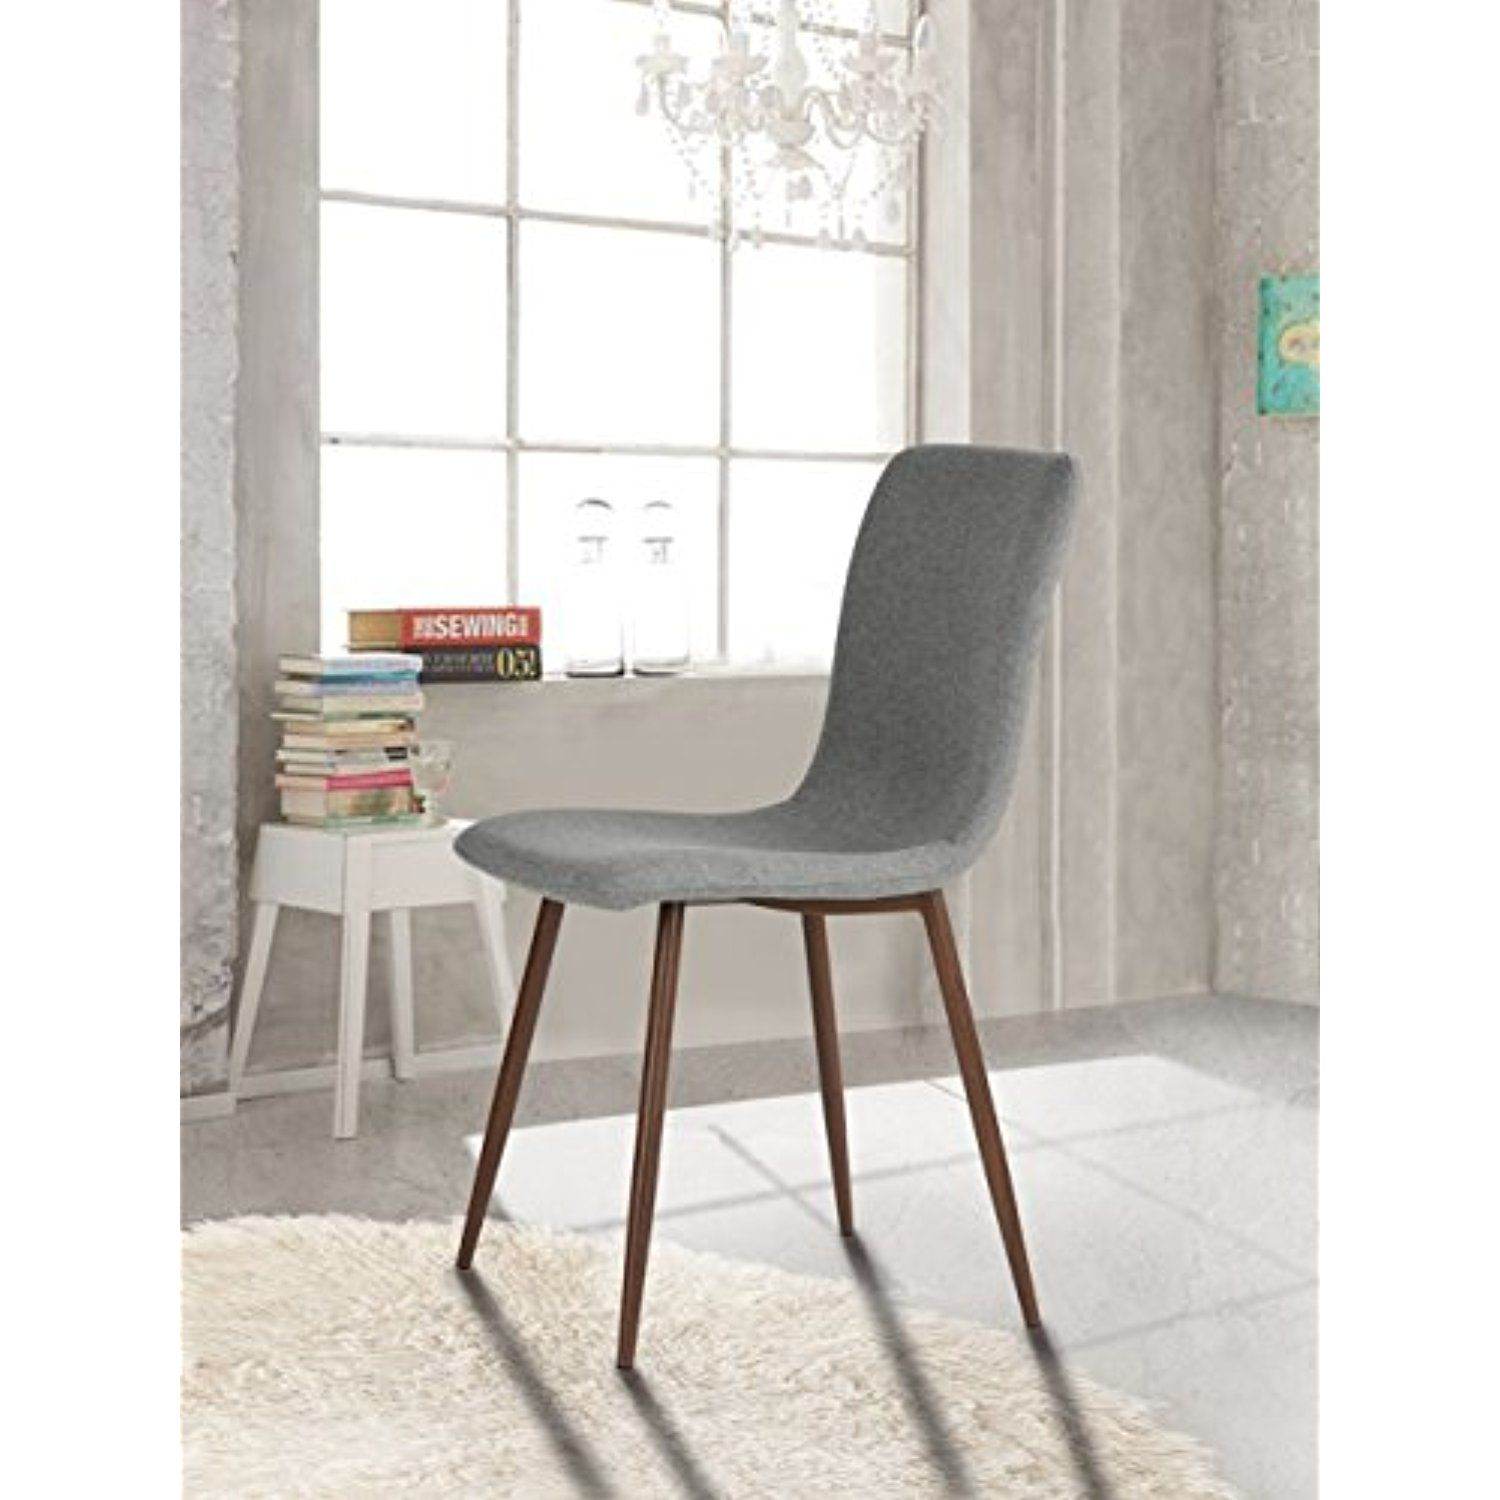 Set of 4 Eames Style Side Dining Chair Brown Metal Legs